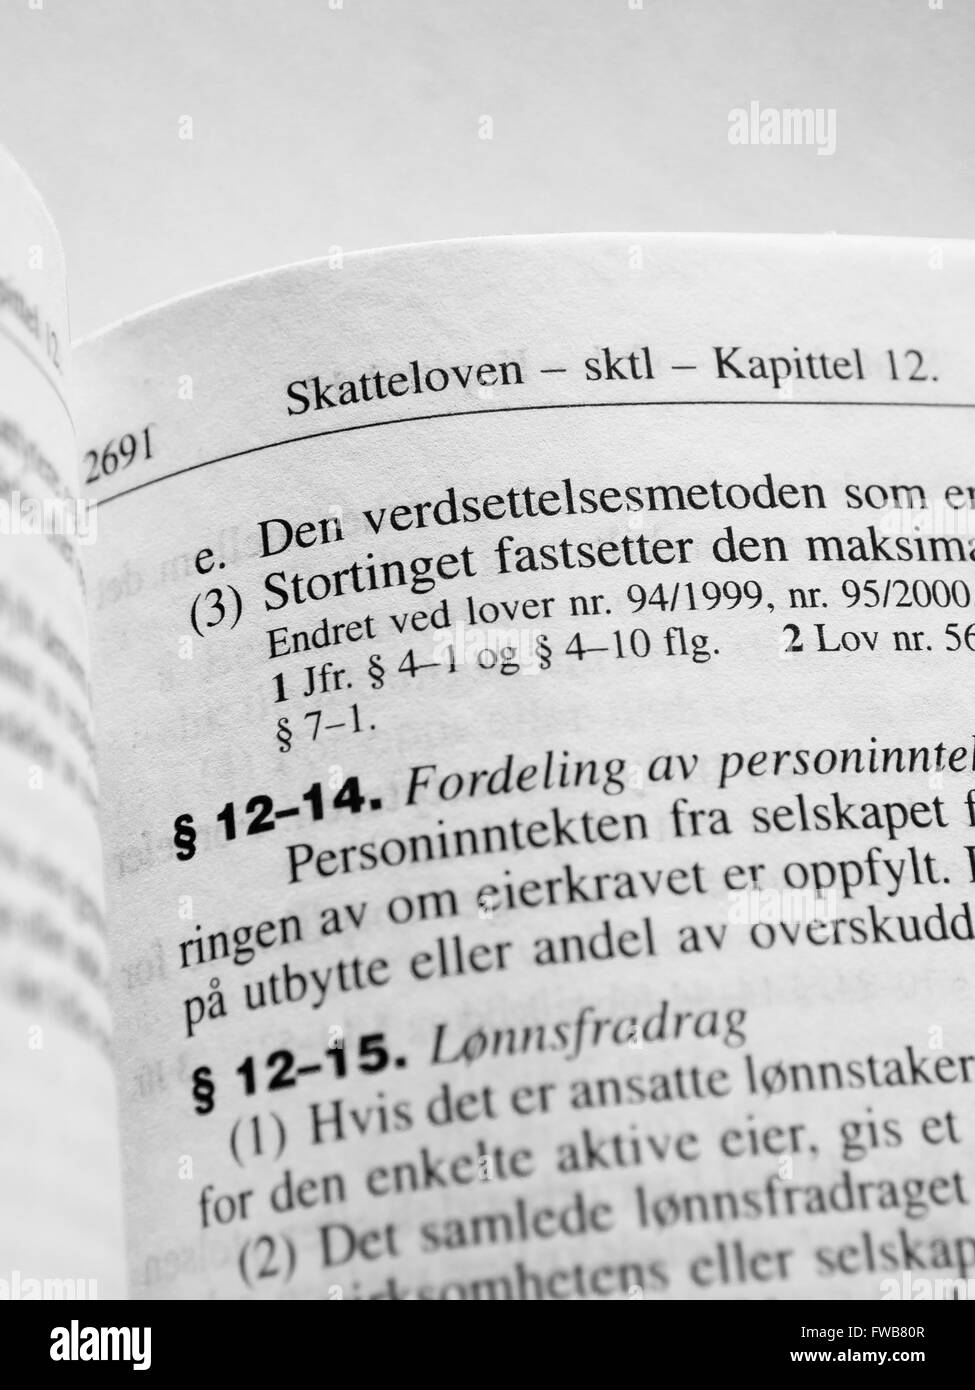 Page from the Norwegian law book, taxation laws 'Skatteloven', a foundation for a social democratic society - Stock Image